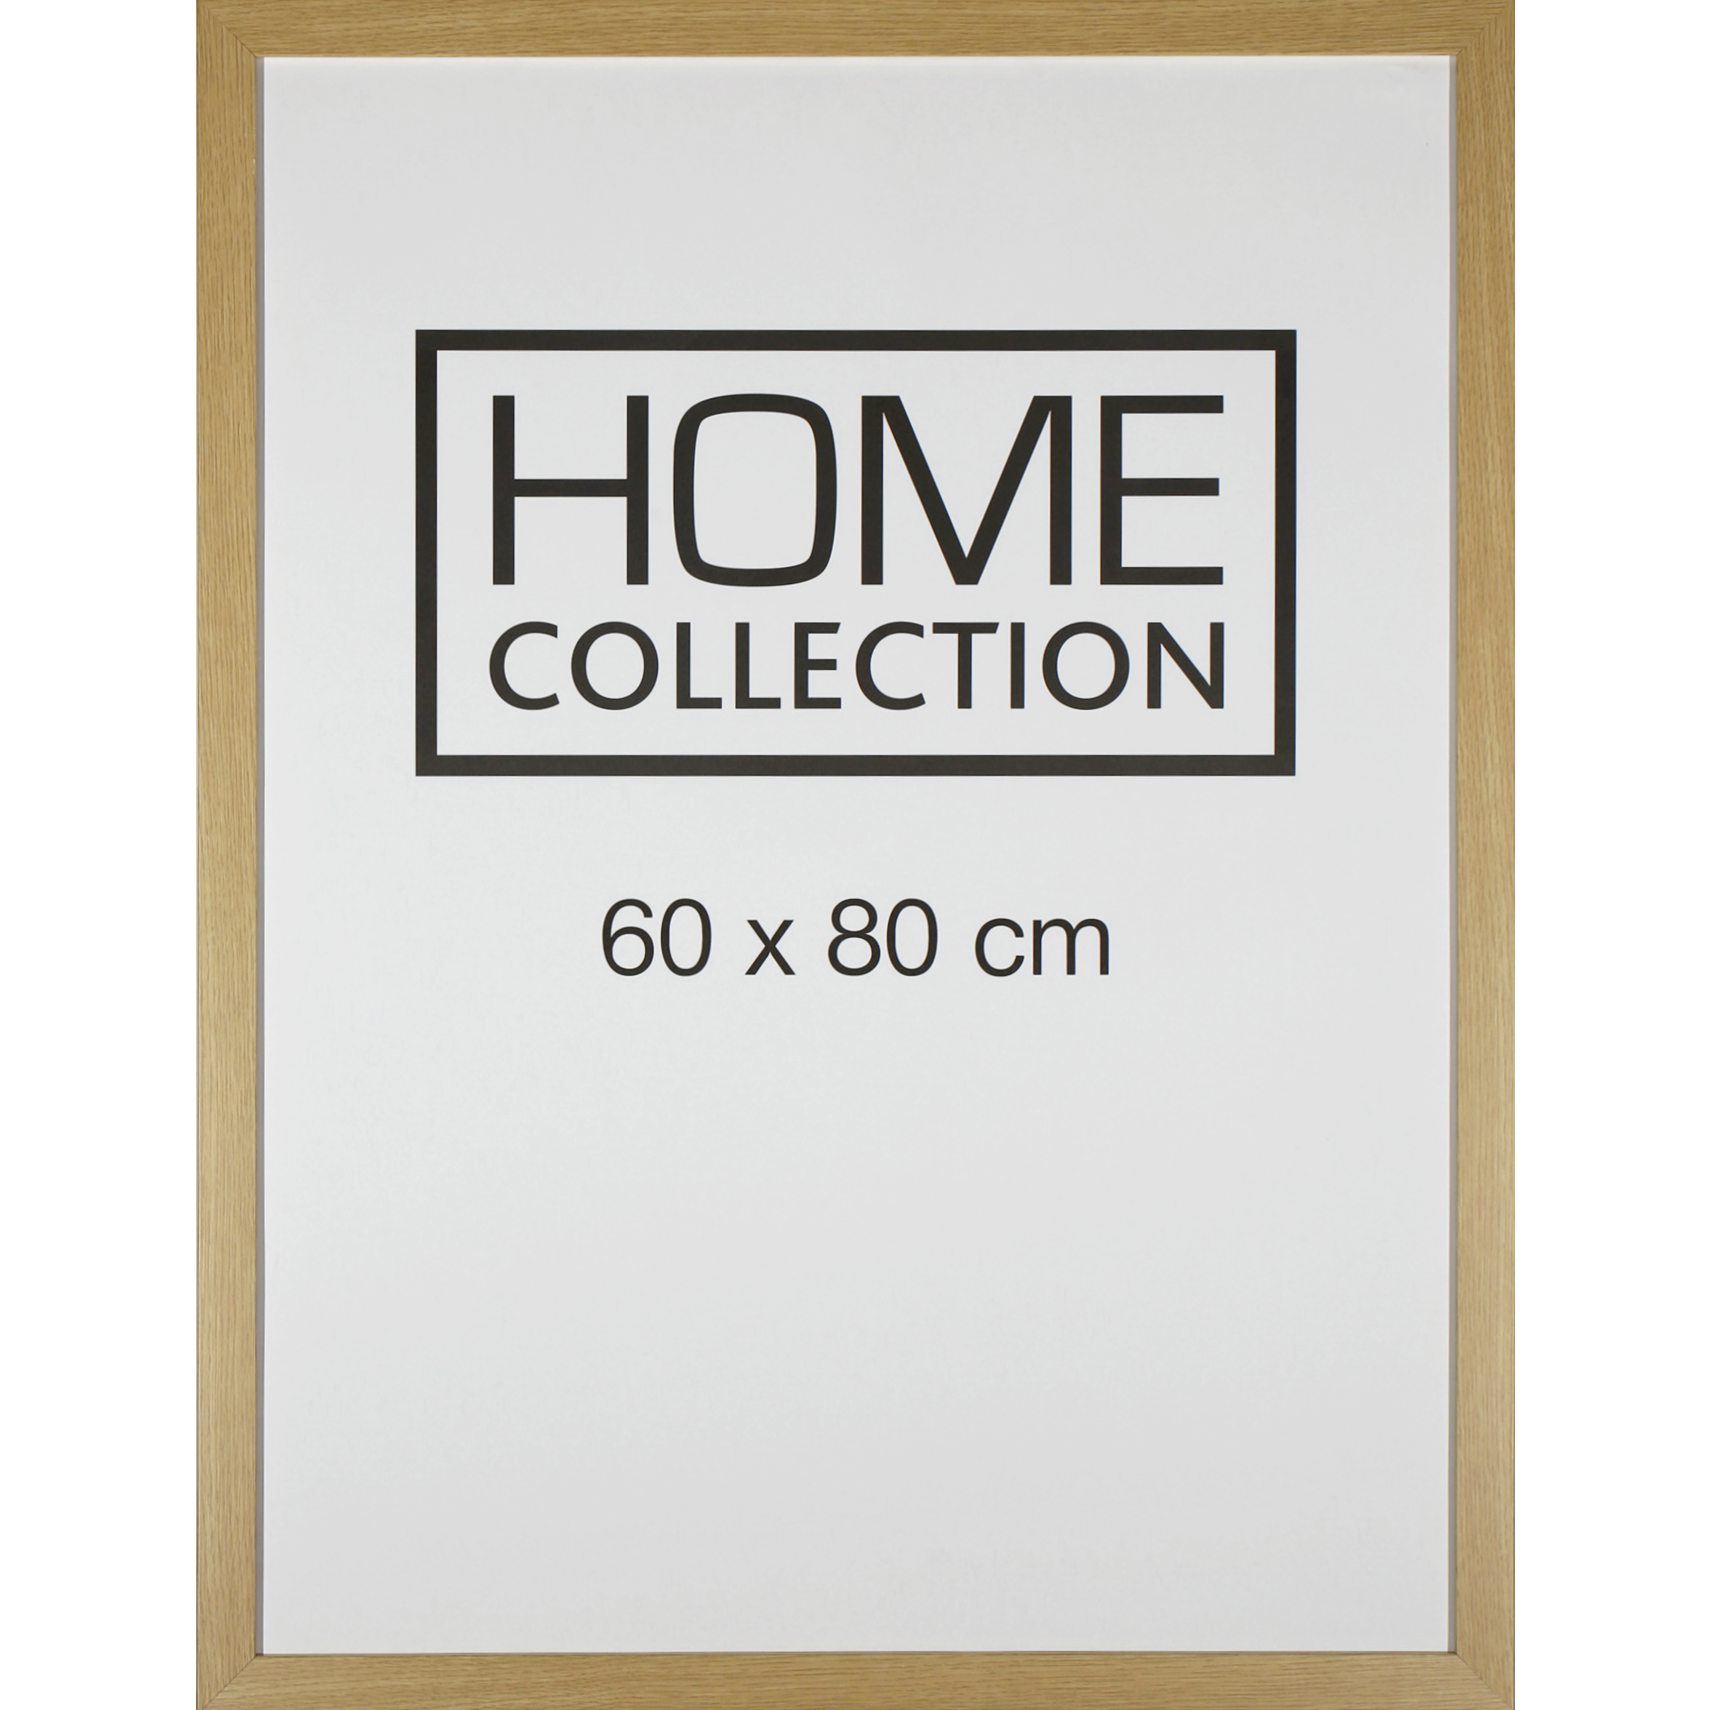 HOME COLLECTION Ramme 60 x 80 x 2 cm - Egetræ ramme